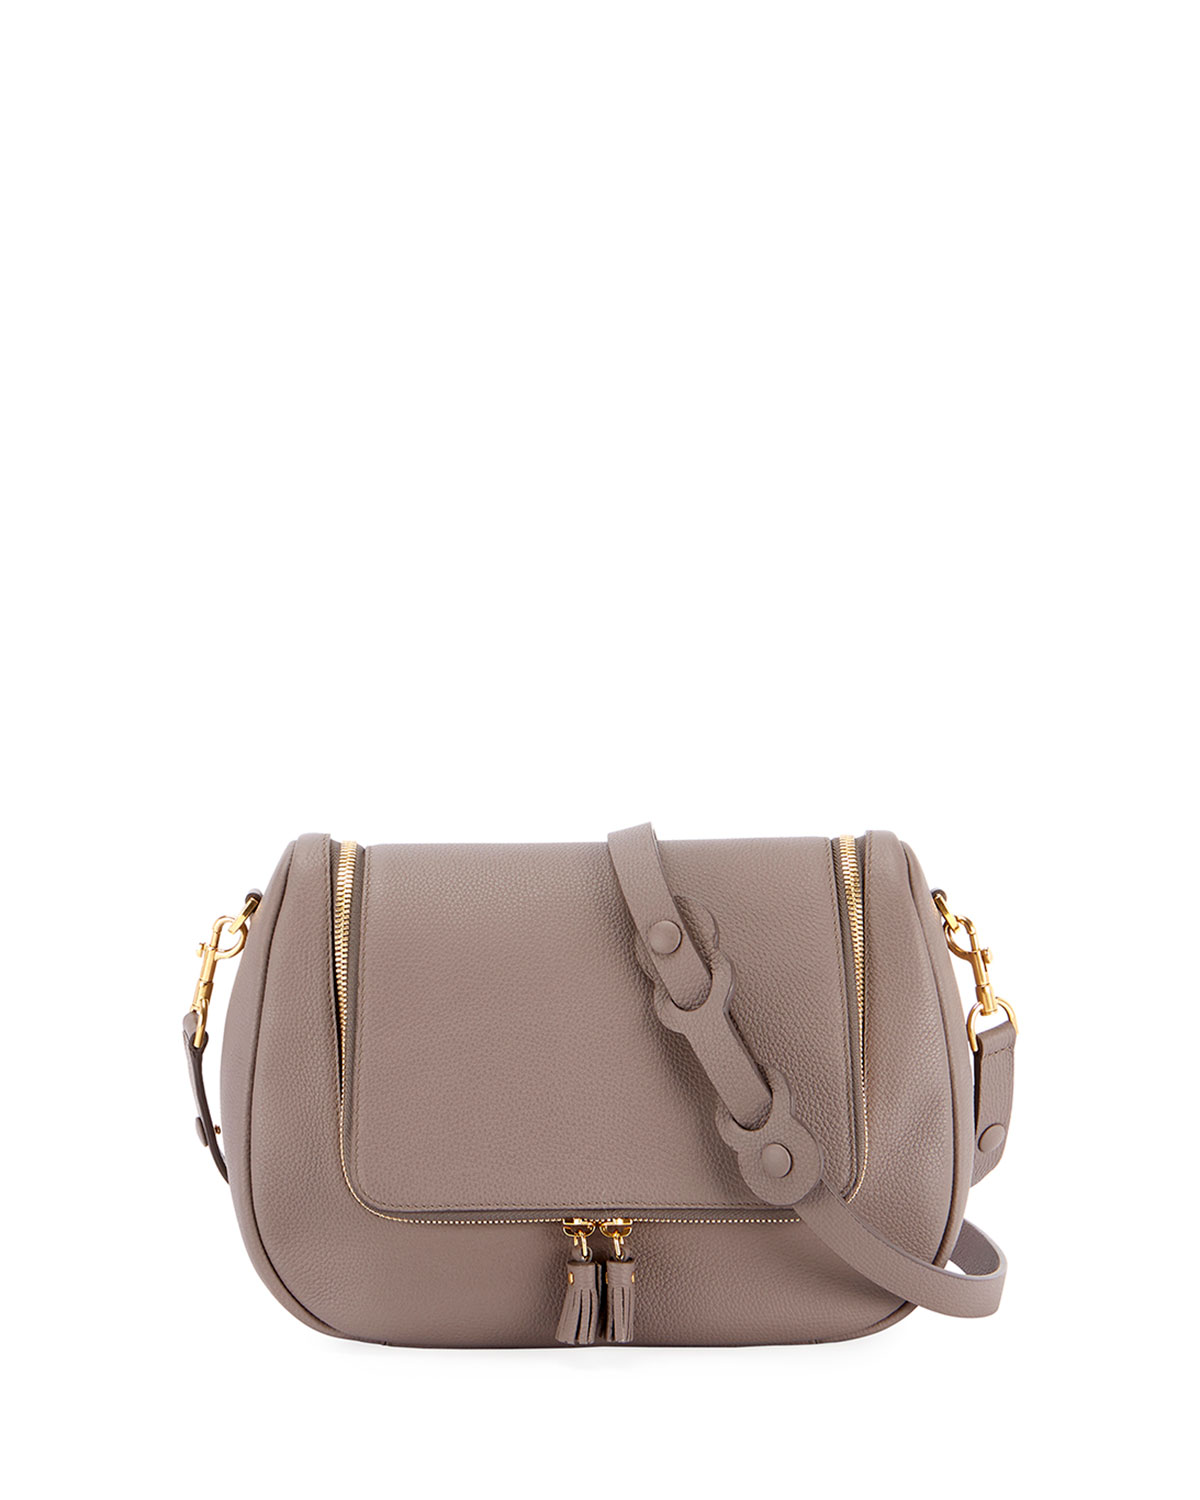 Vere Mini Soft Satchel Bag in Dark Beige